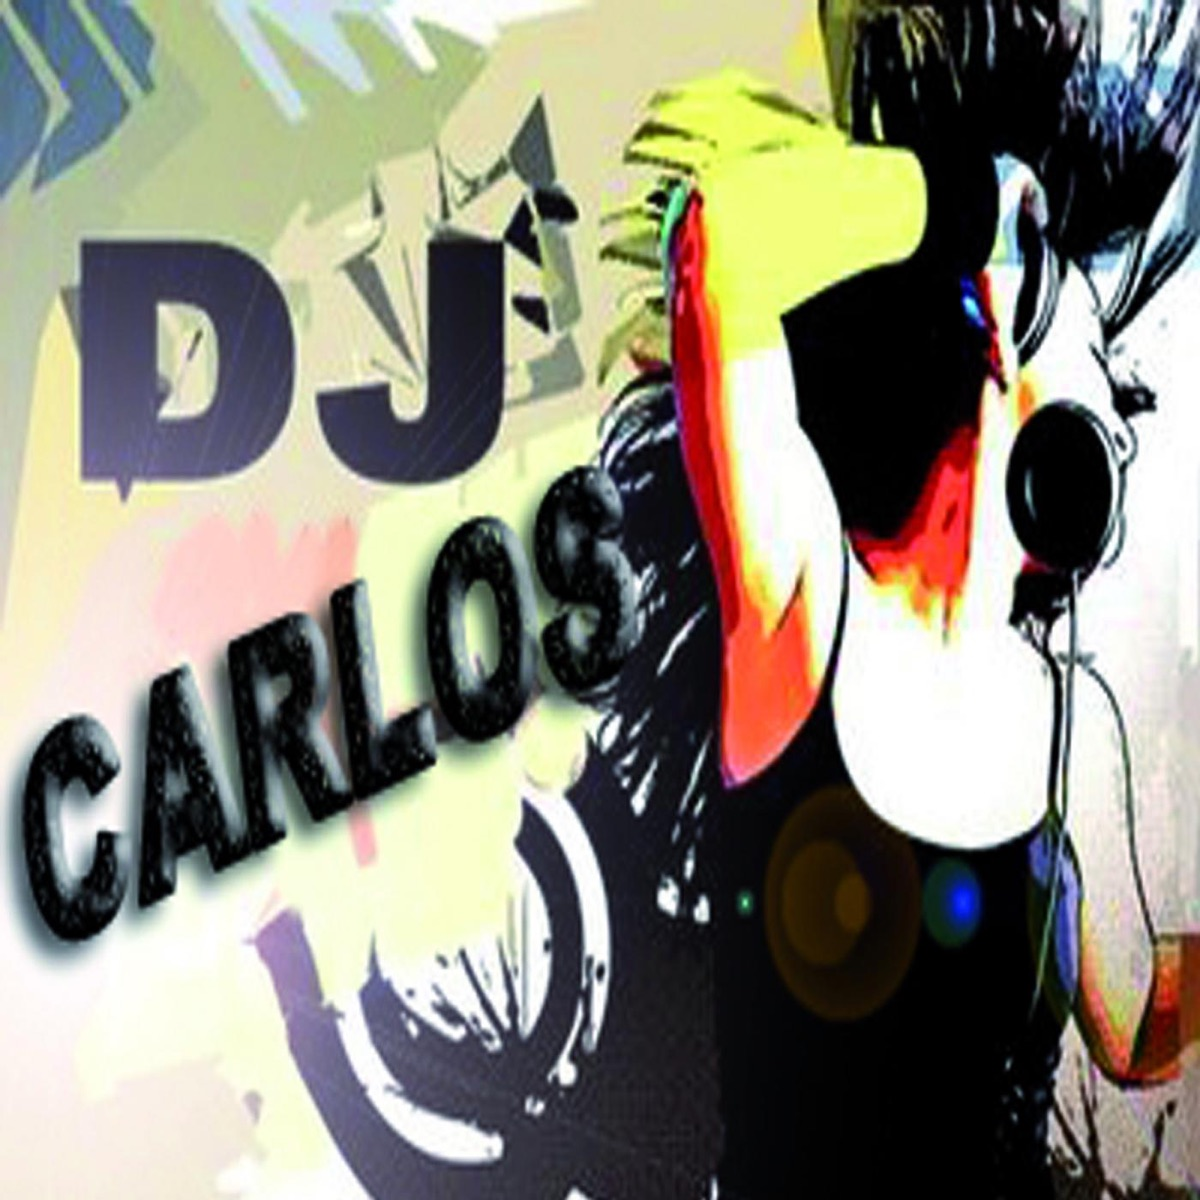 Mix funk 2k18 By Dj Carlos